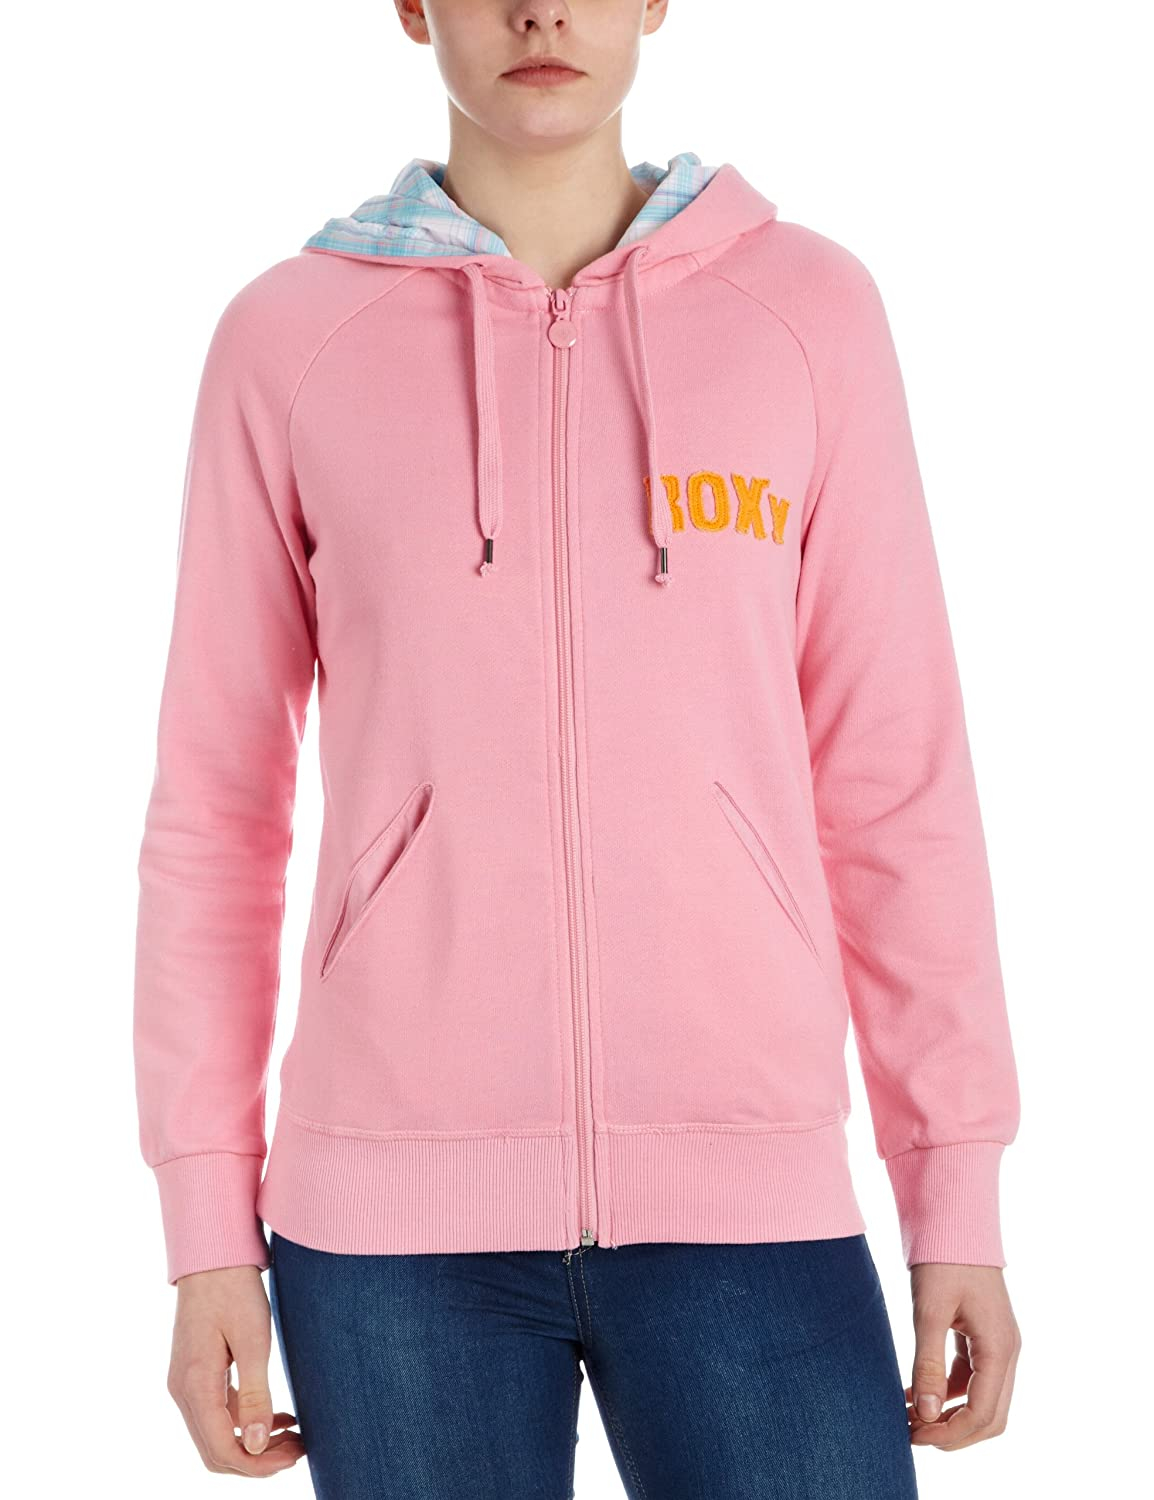 Roxy Offshore Womens Sweatshirt